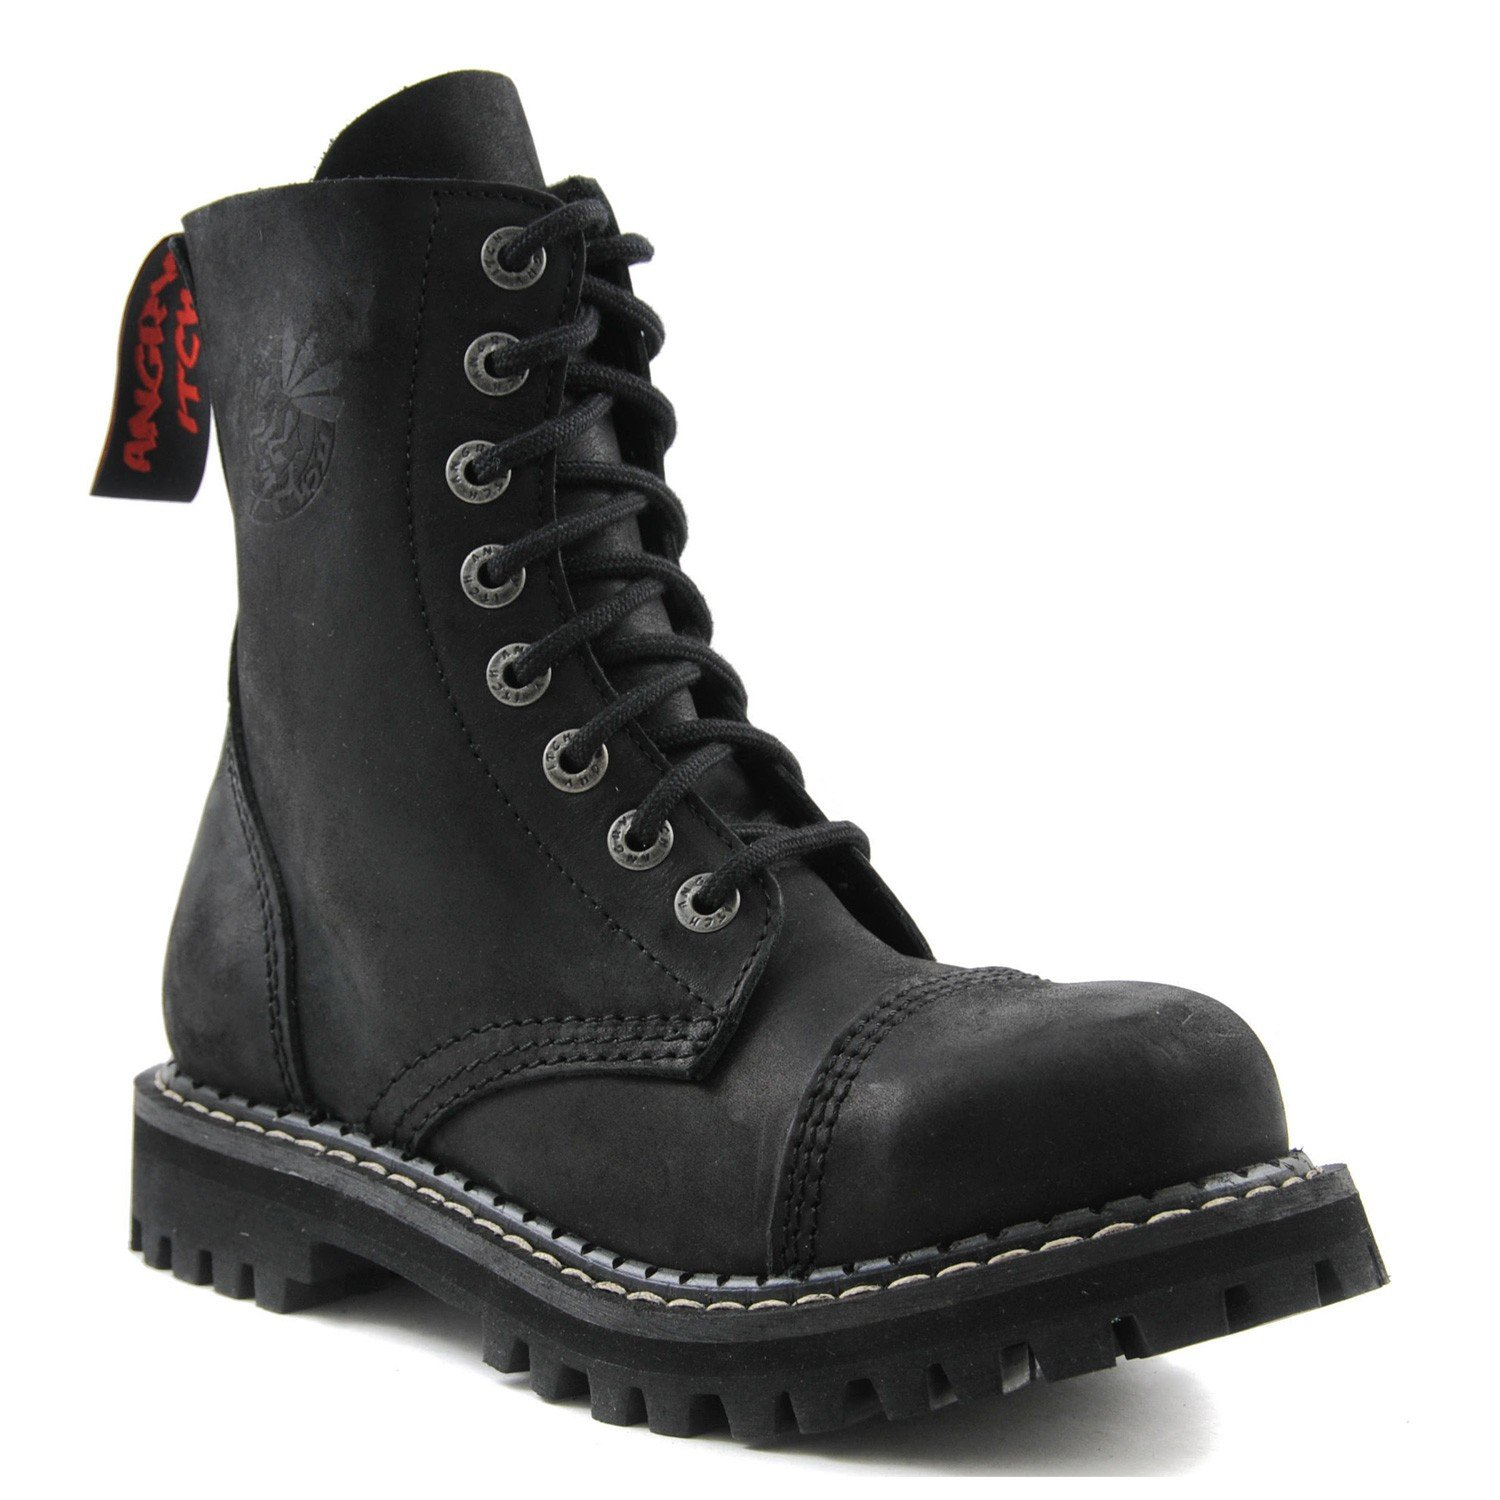 ANGRY ITCH 8-Loch Gothic Punk Army Ranger Armee Vintage Leder Schwarz Stiefel mit Stahlkappe 36-48 - Made in EU